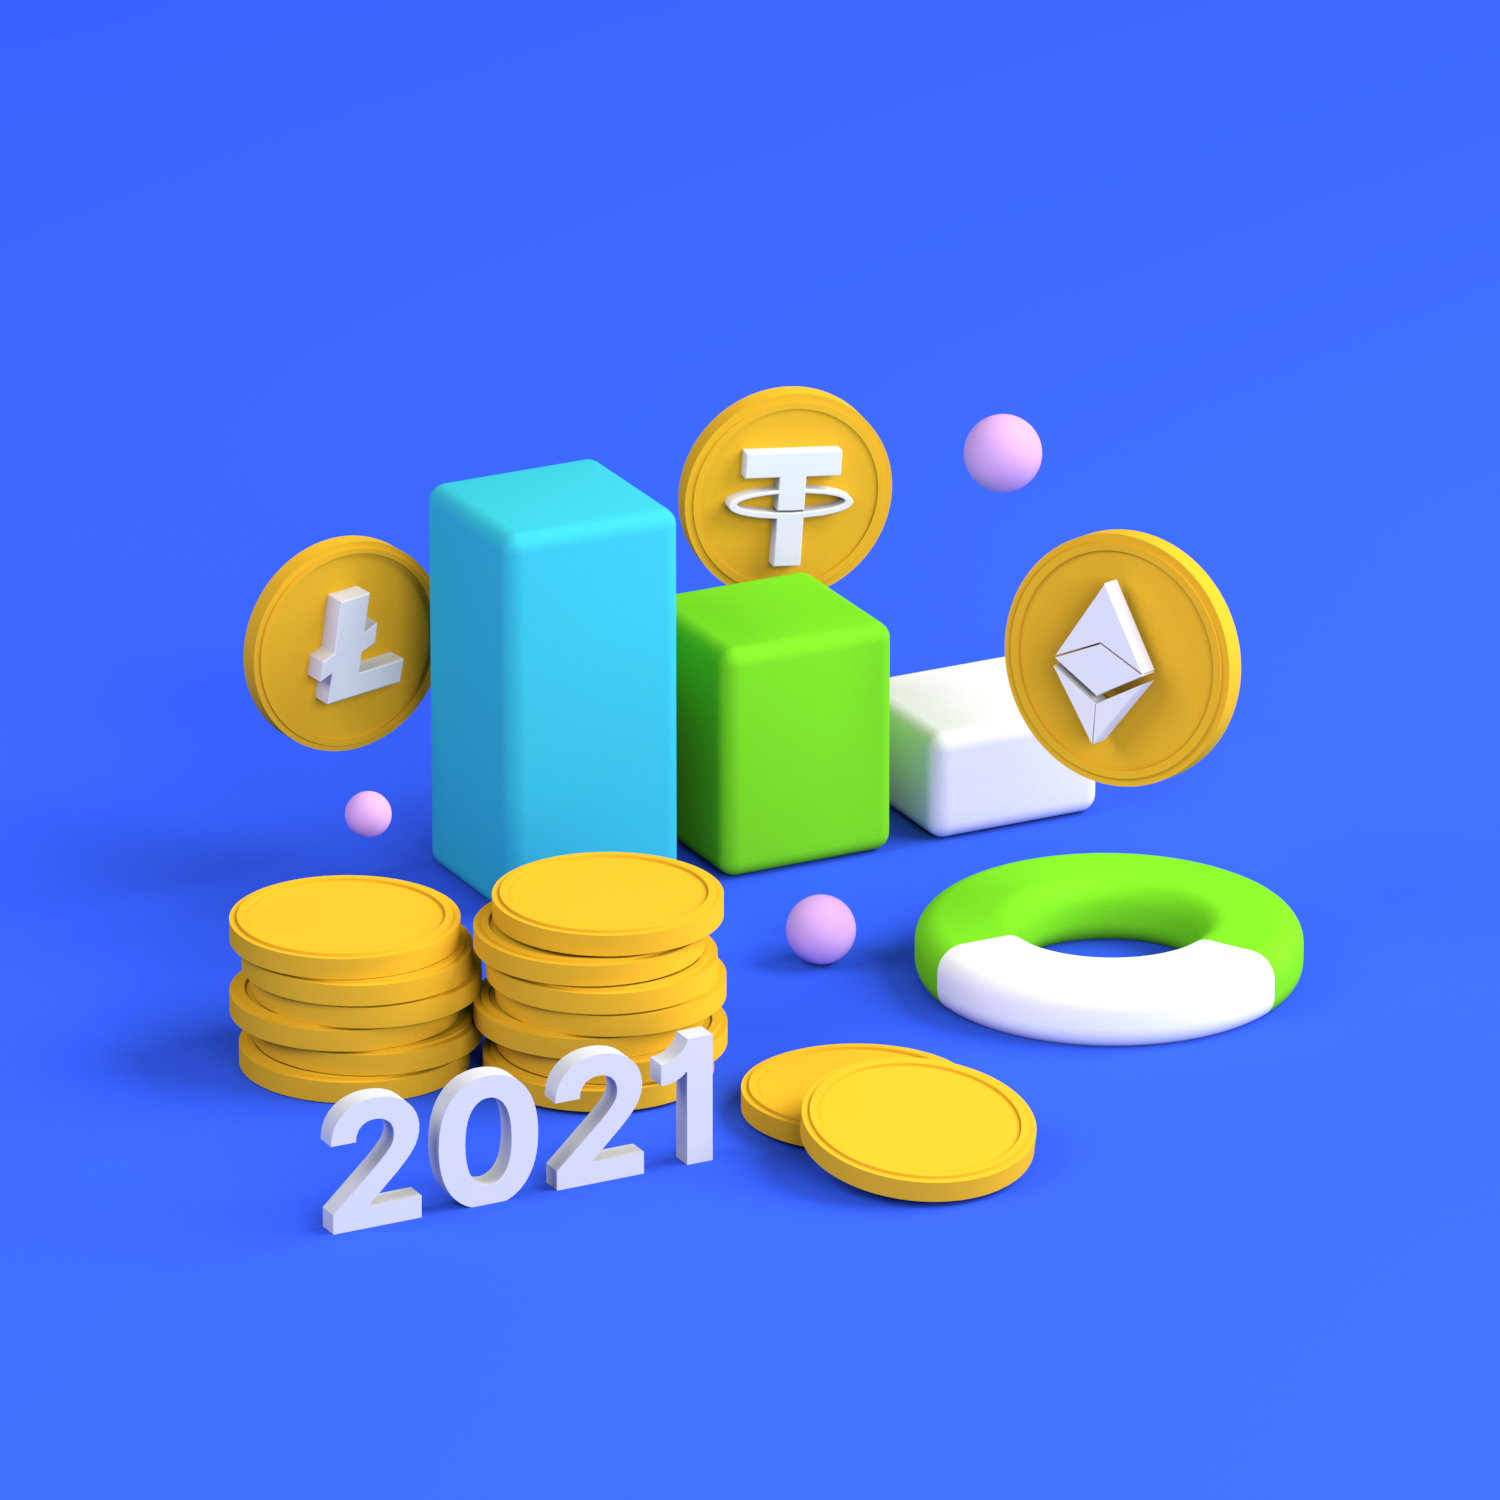 10 Big Trends That Will Dominate Crypto in 2021